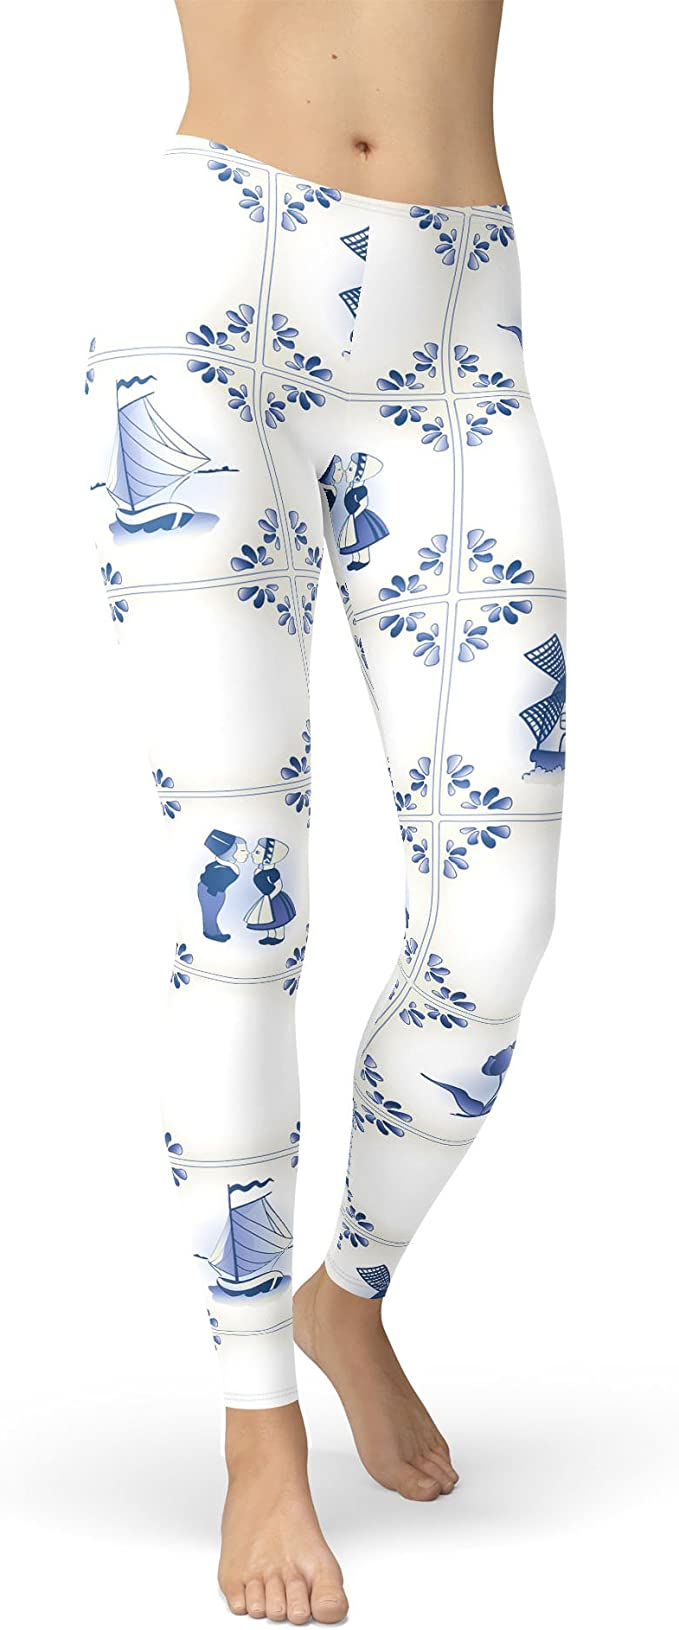 Queen of Cases Delft Blue Holland Pottery Kids Leggings